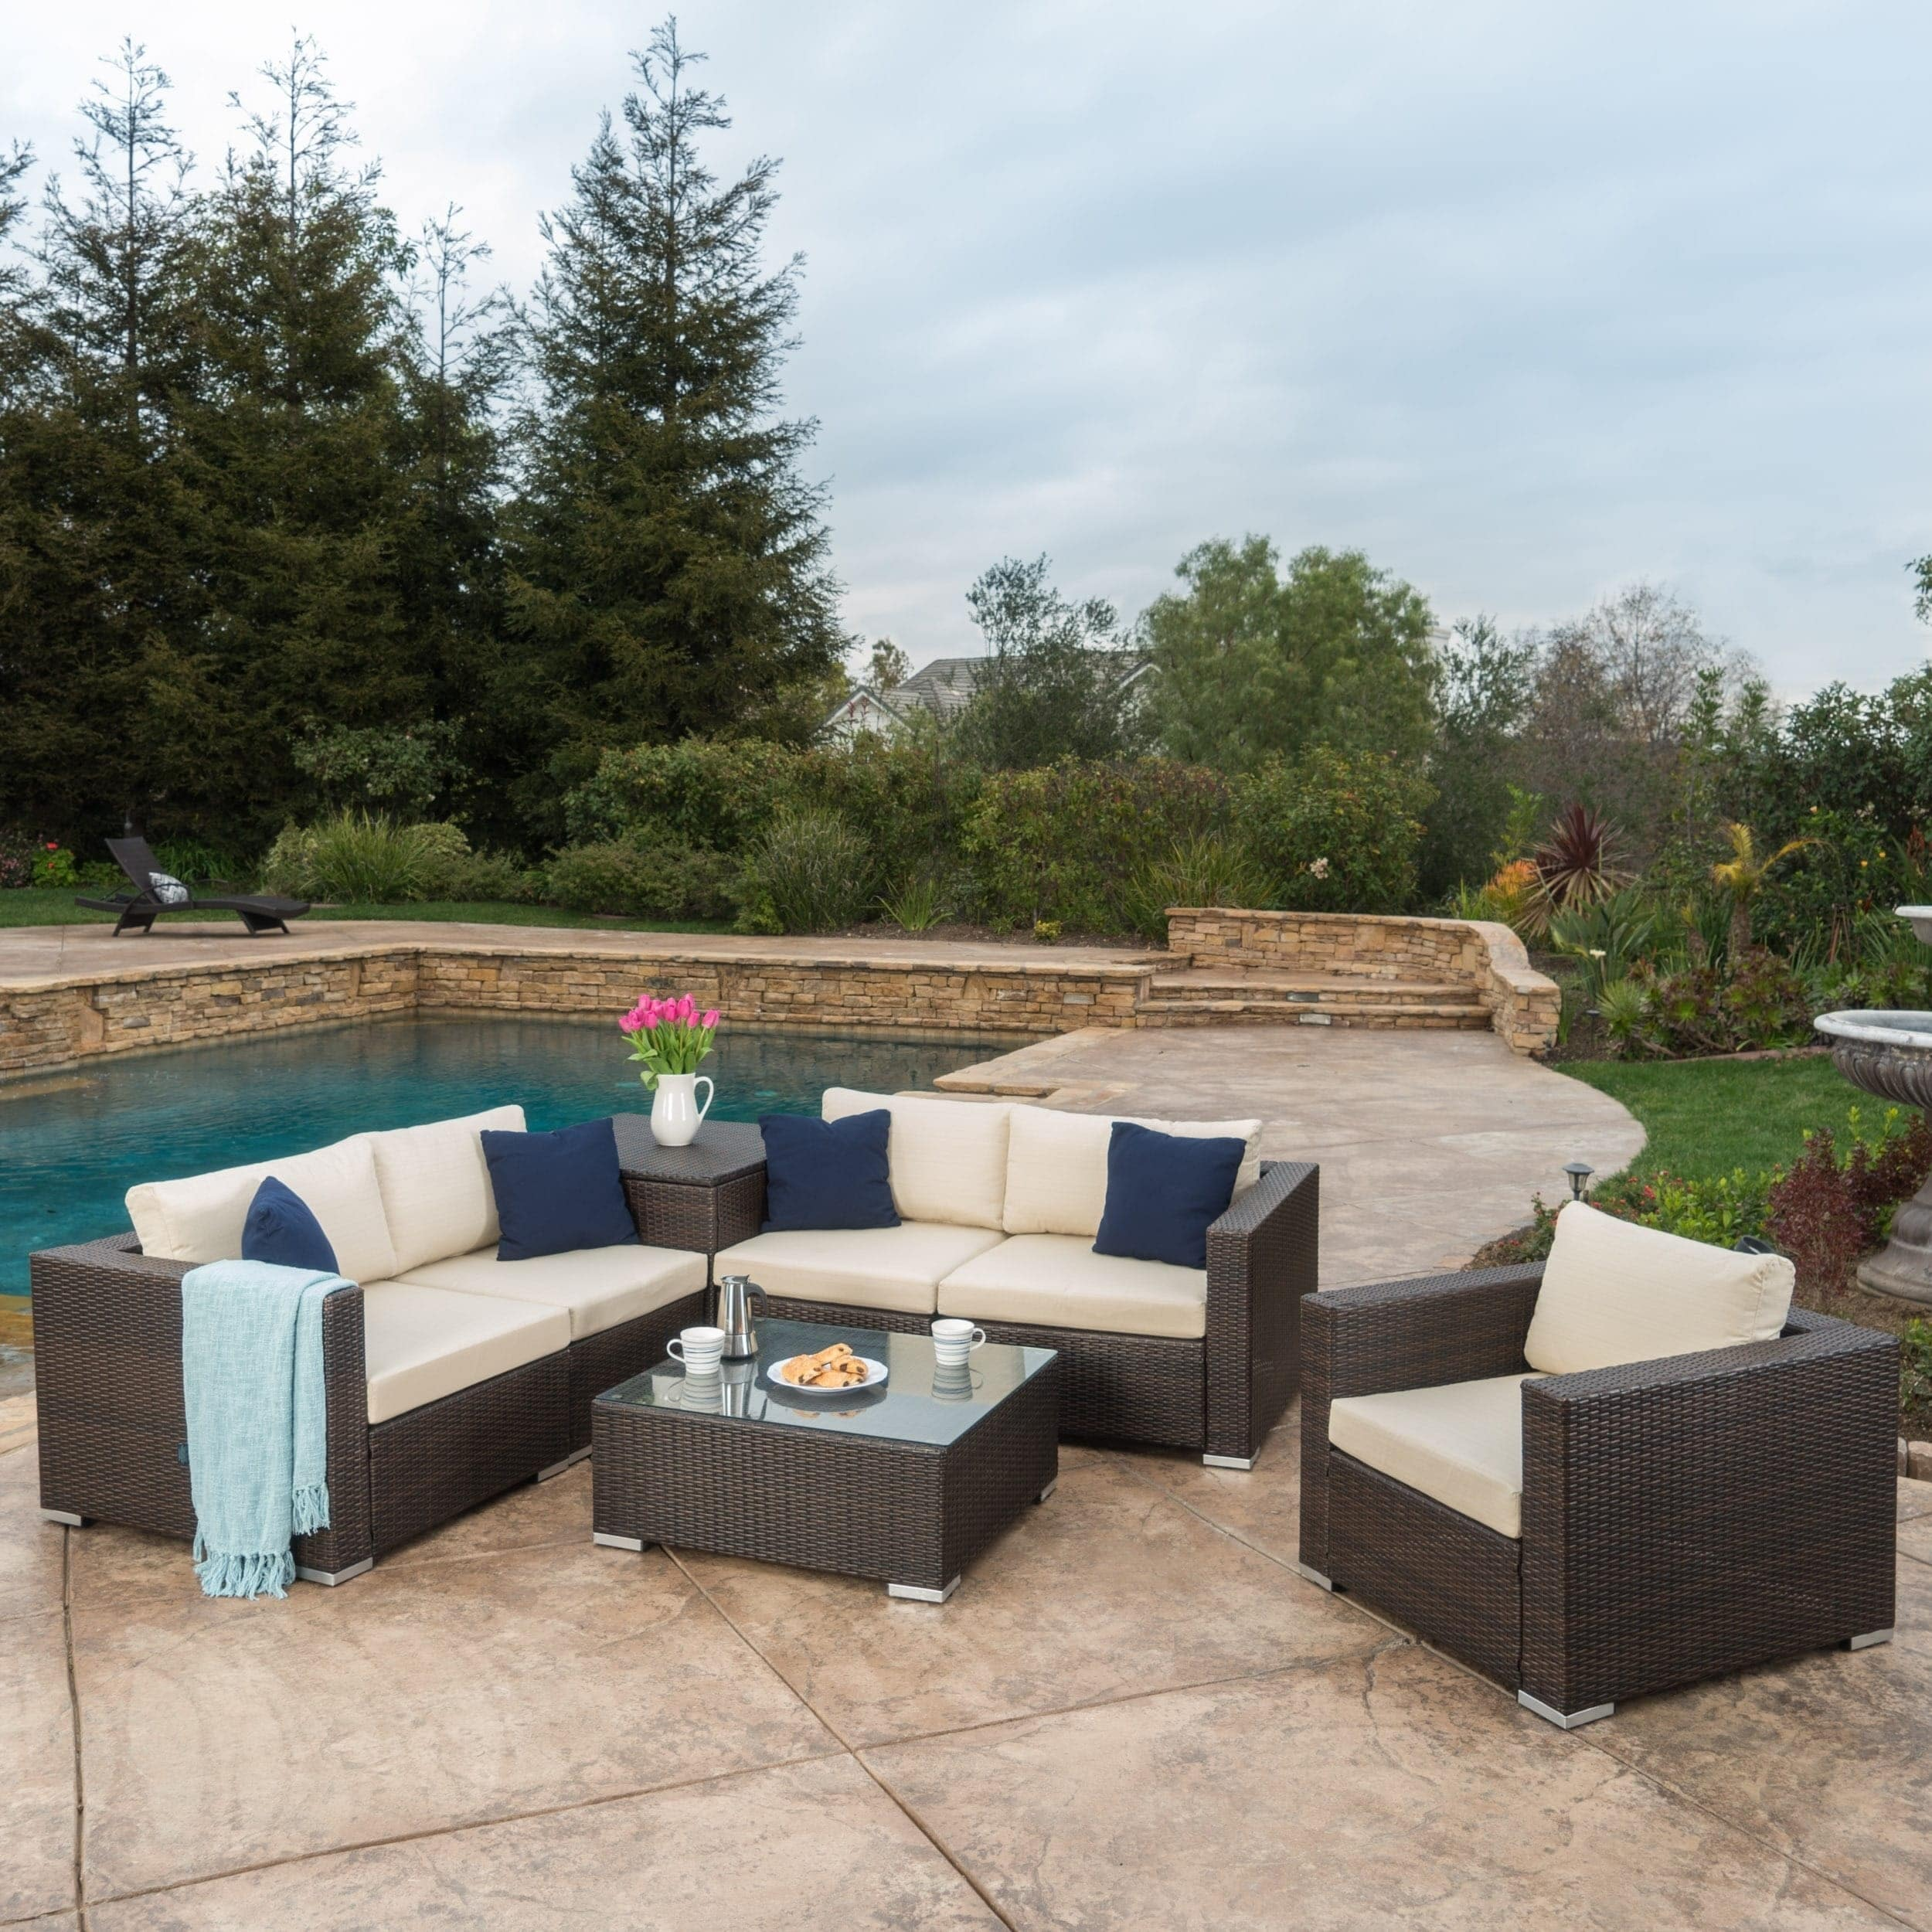 Shop Santa Rosa Outdoor 7 Piece Wicker Sectional Sofa With Storage